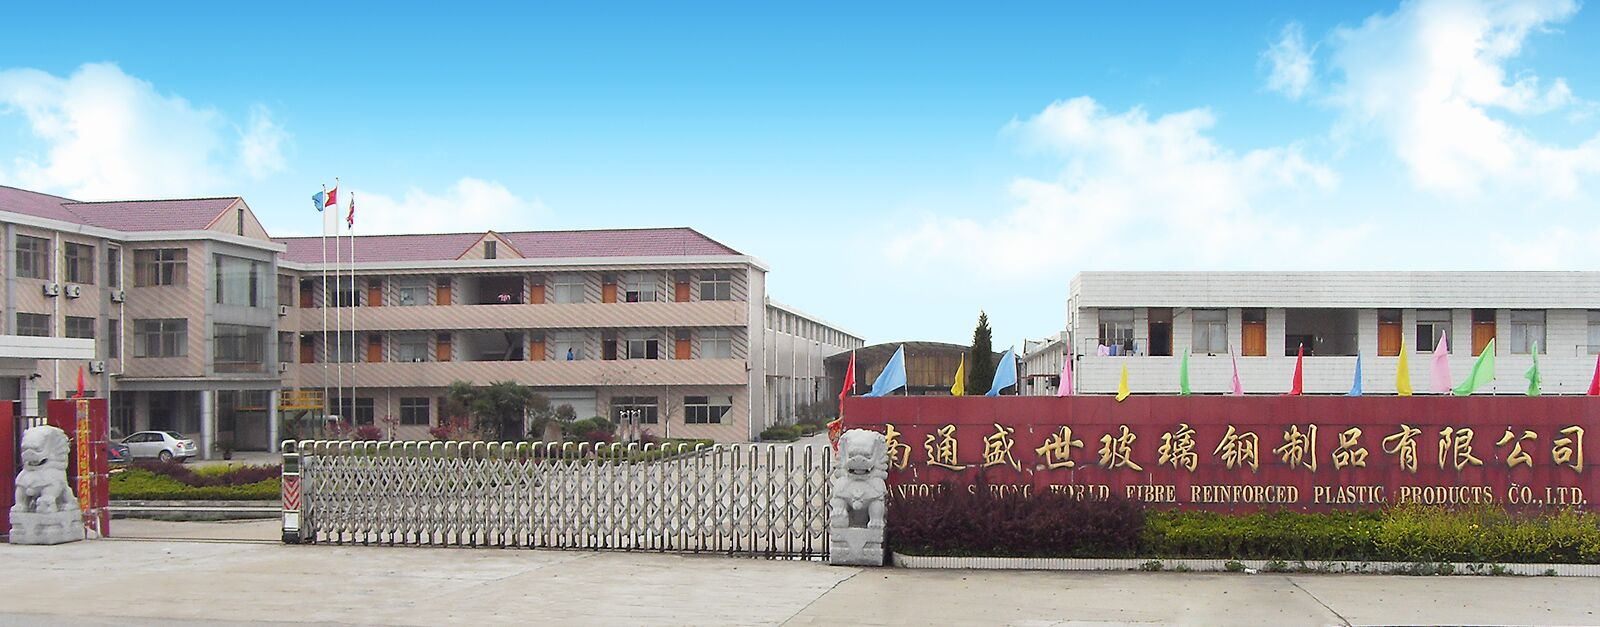 Nantong Strongworld FRP Products Co., Ltd